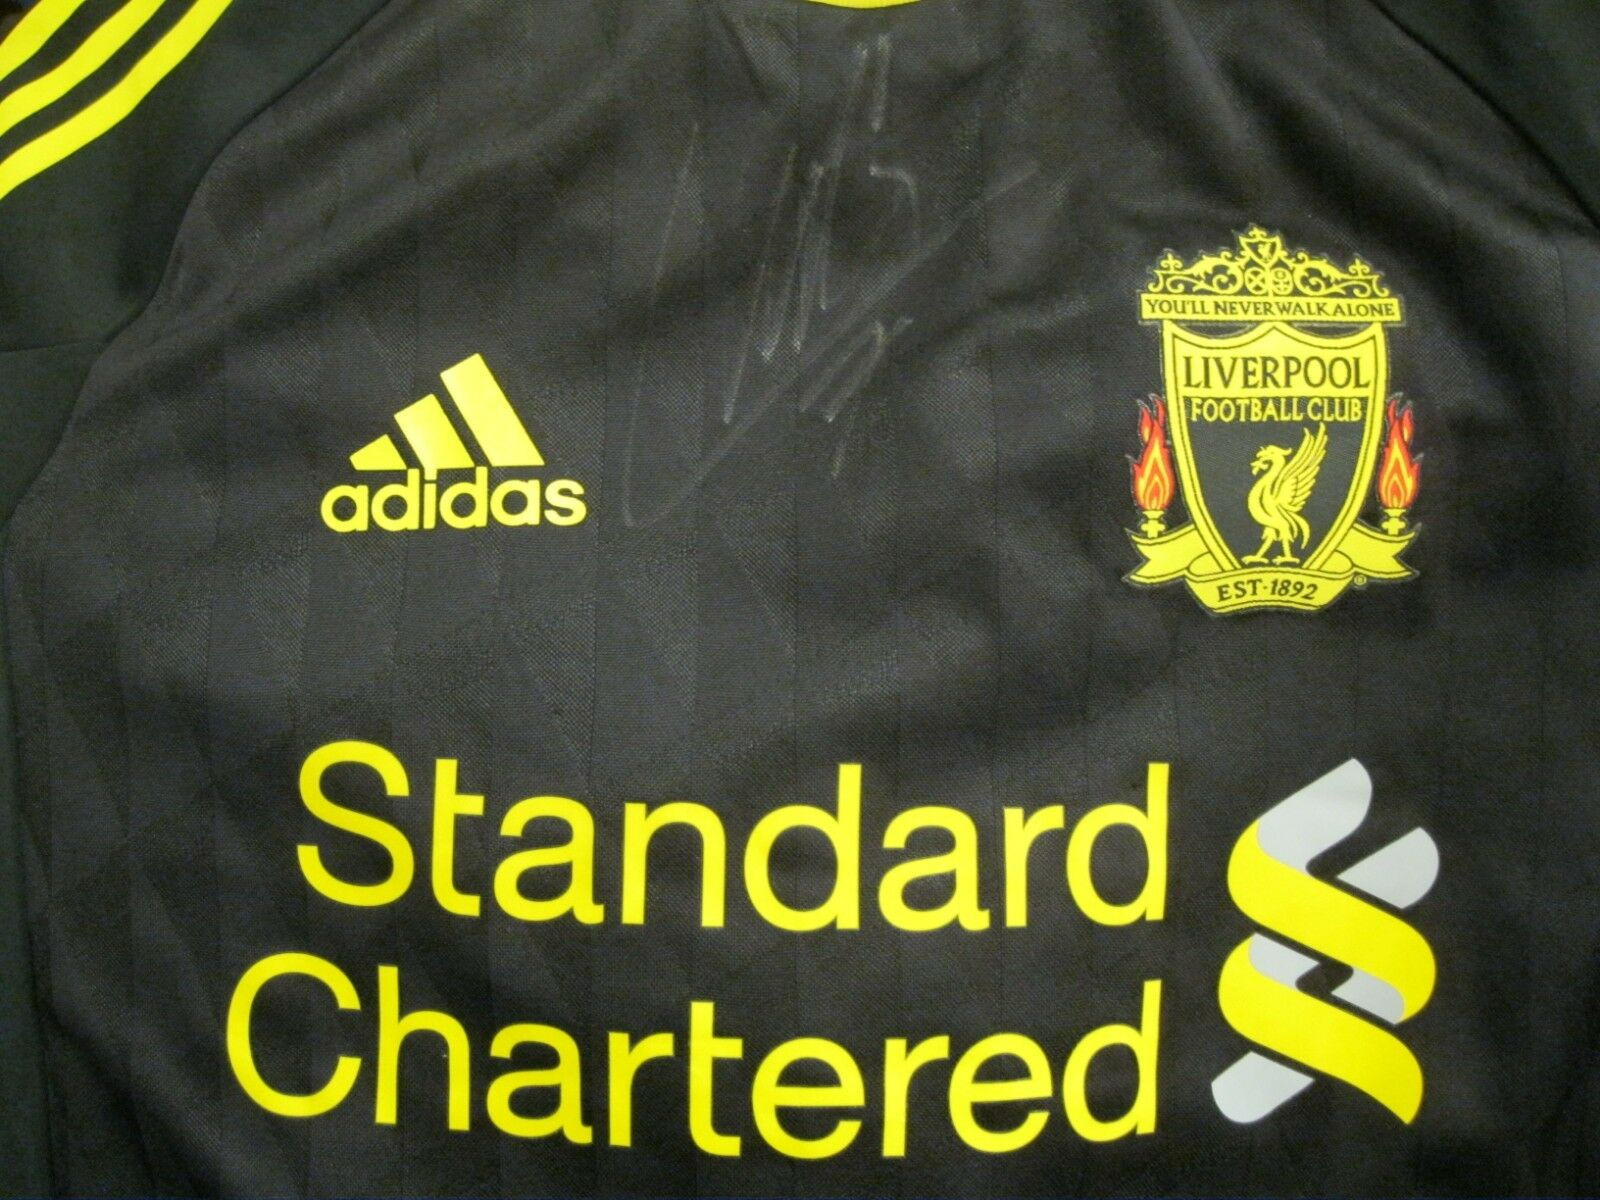 AUTHENTIC Liverpool SIGNED by Suarez 2010/2011 Third Size M adidas jersey